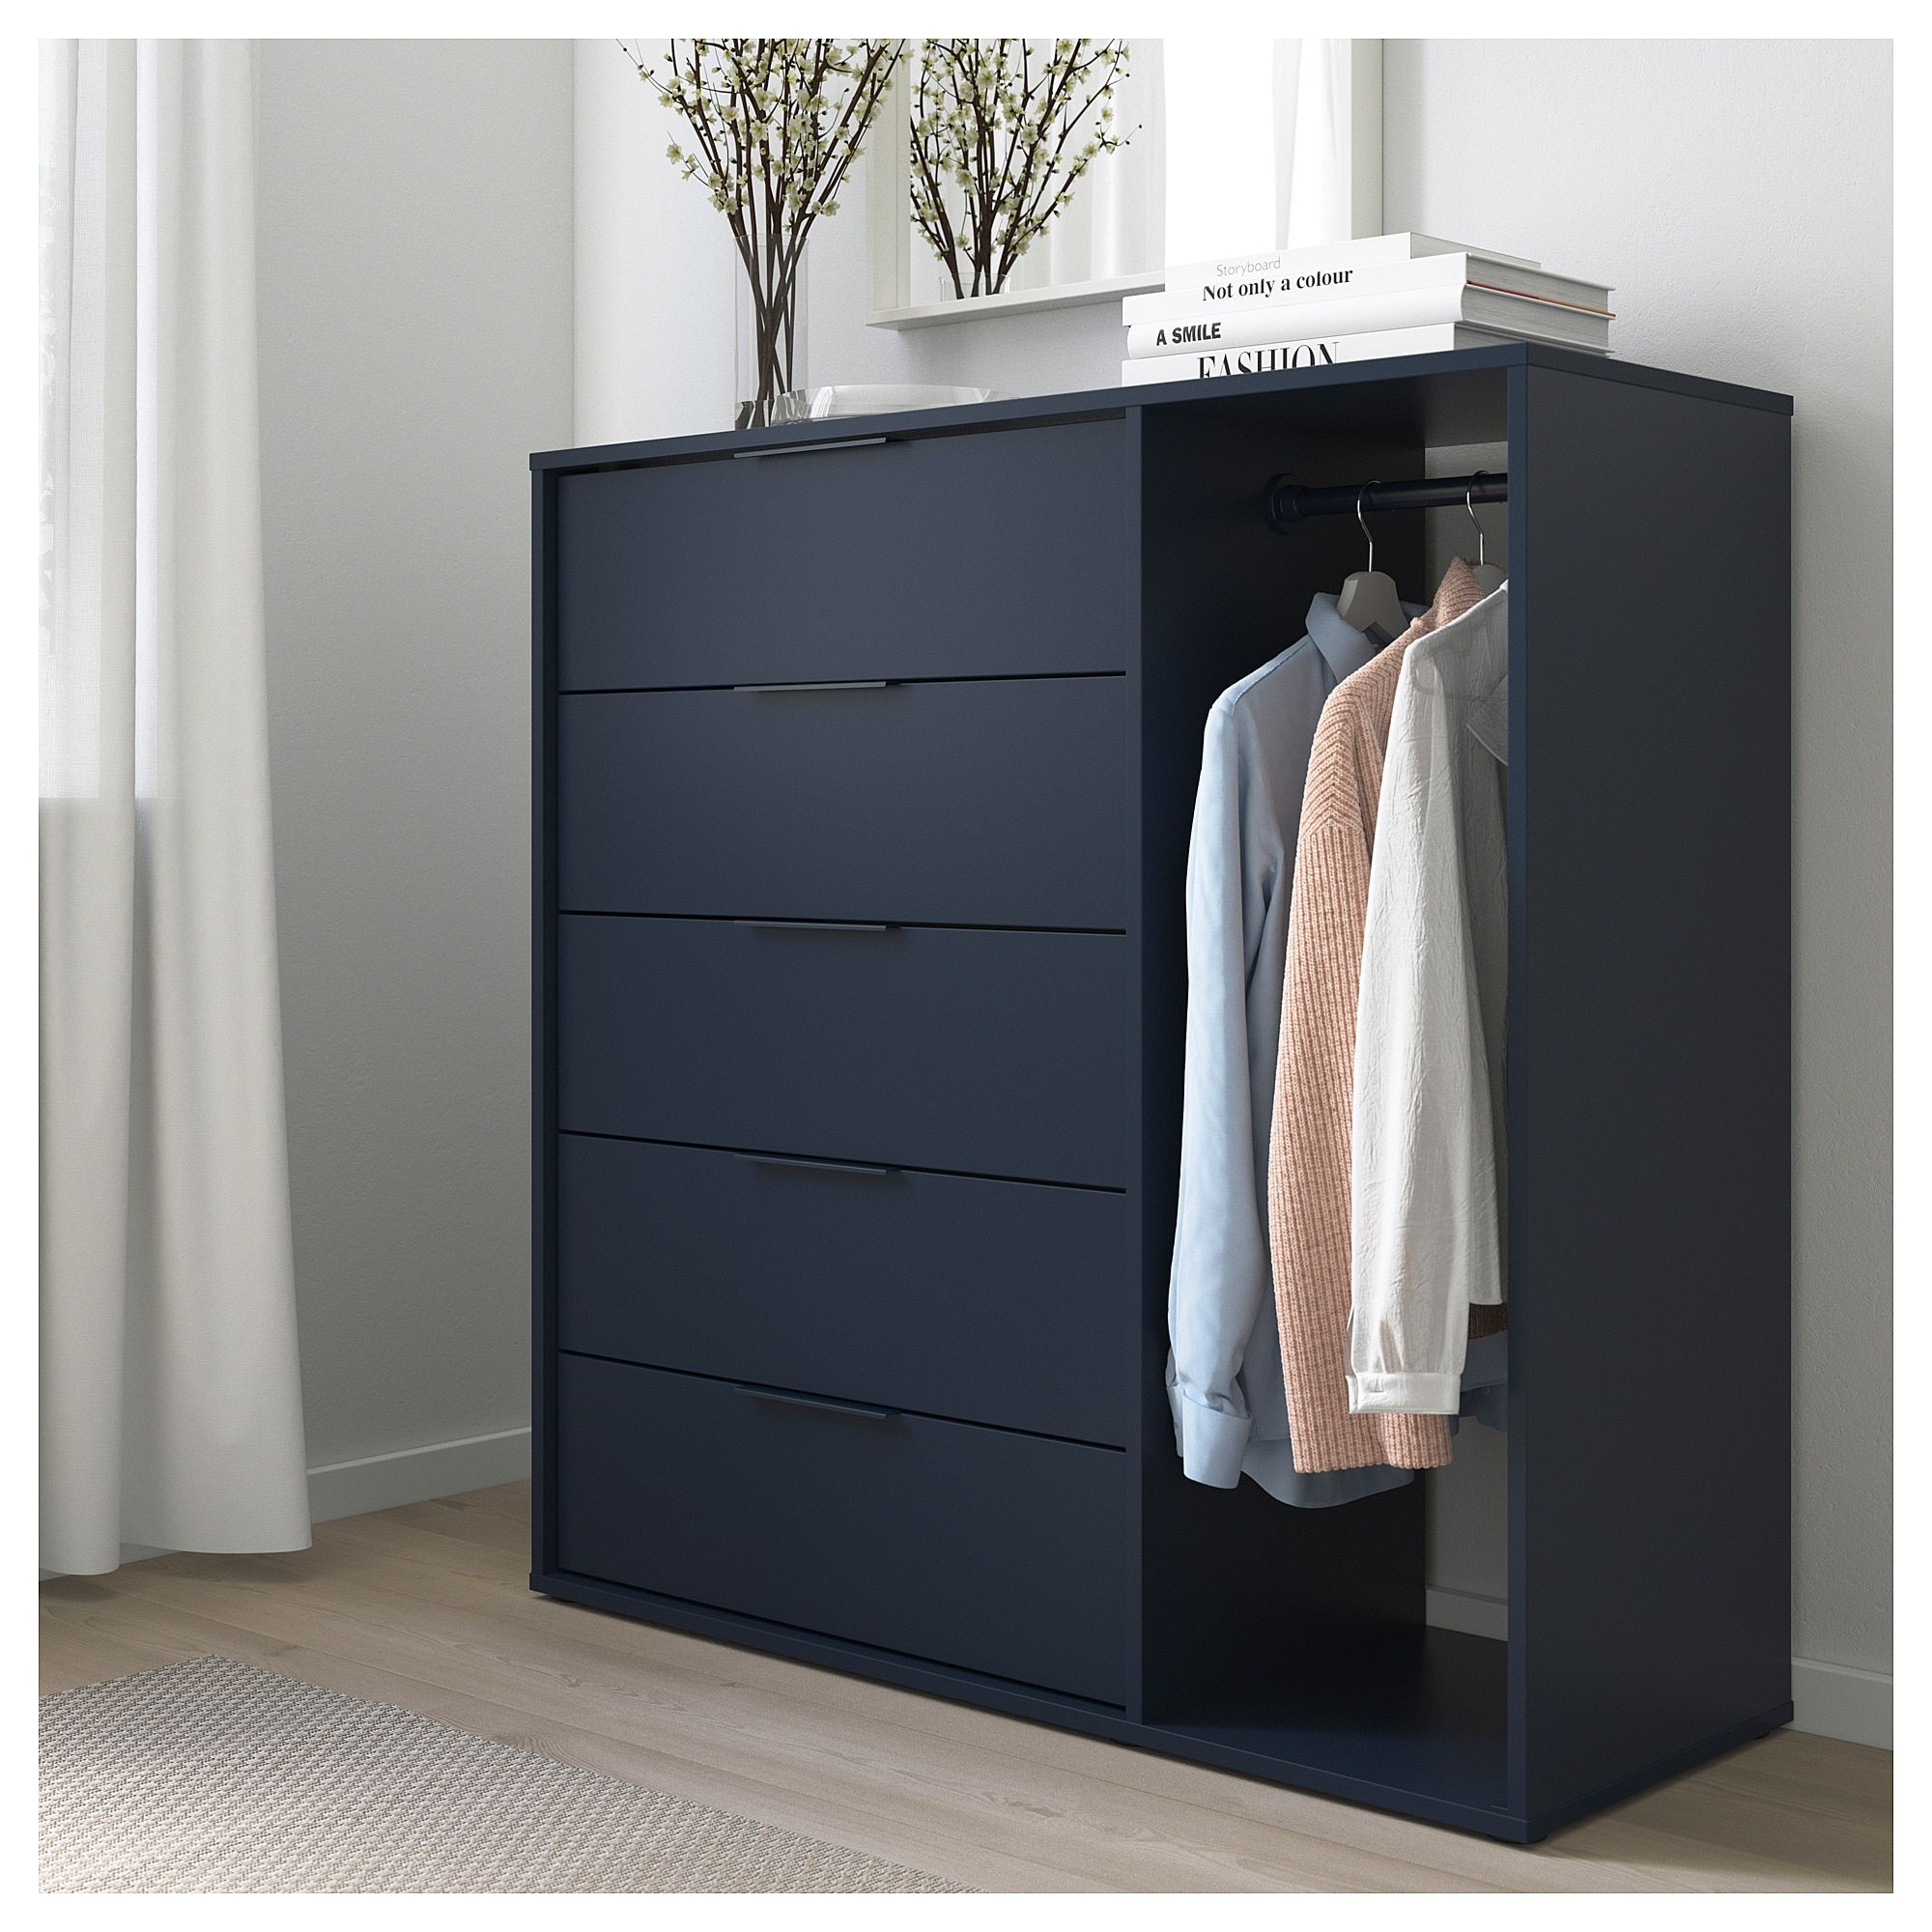 Nordmela Chest Of Drawers With Clothes